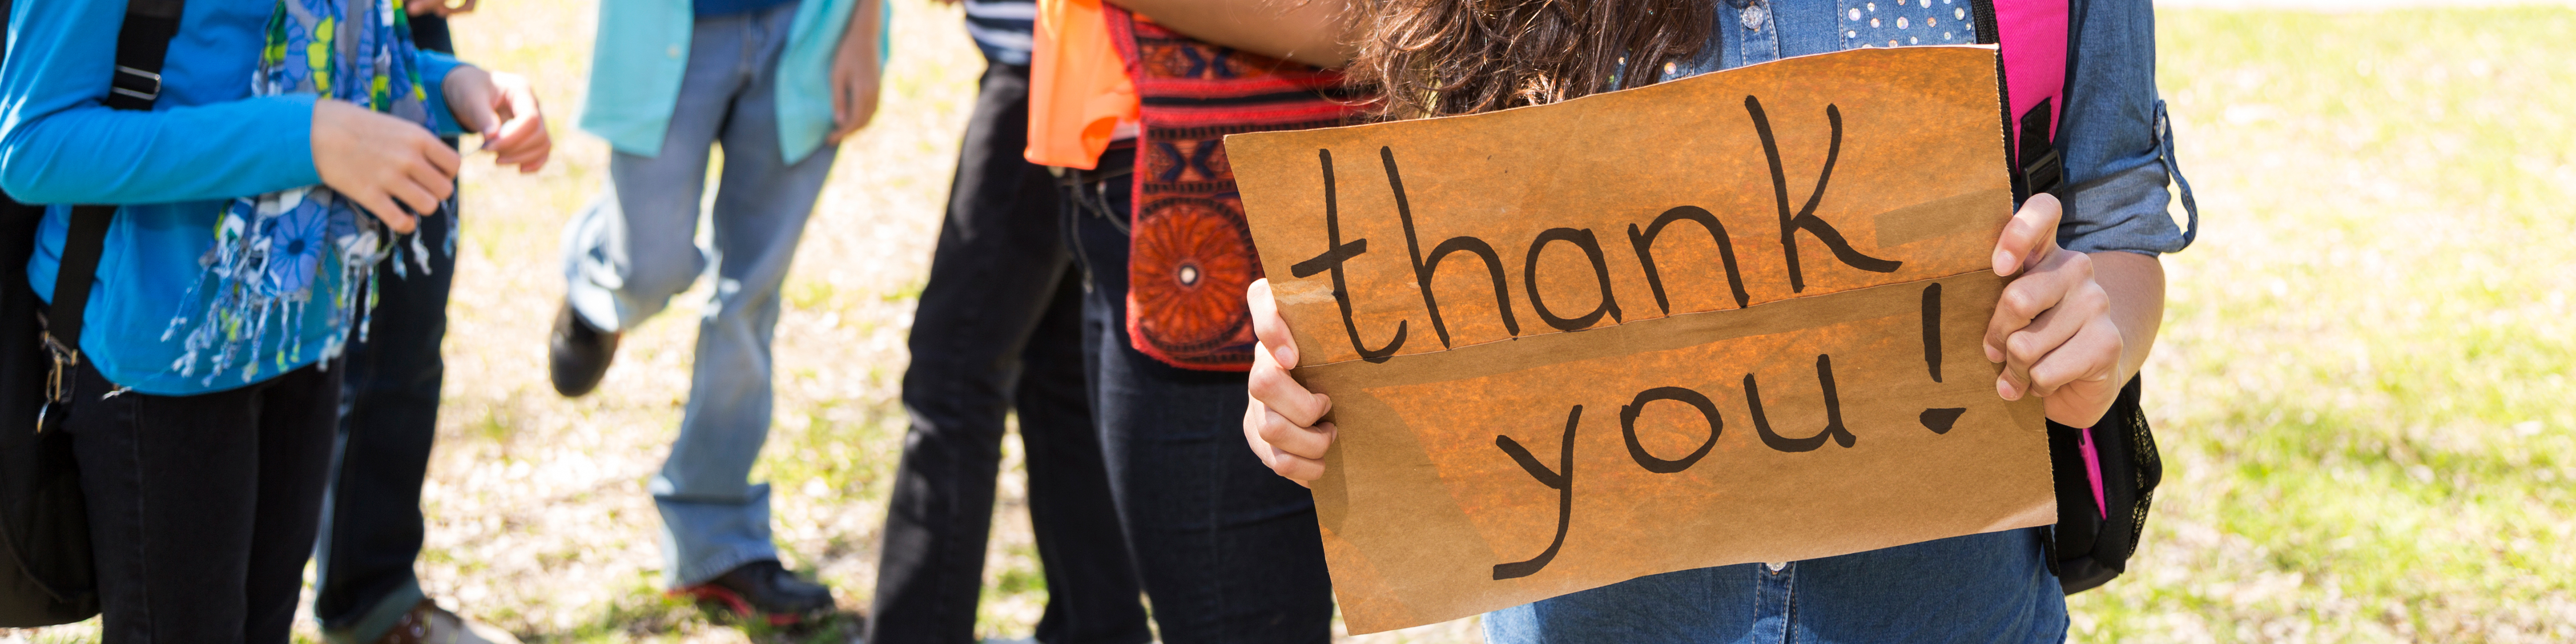 a handwritten sign that reads thank you being held by a young woman